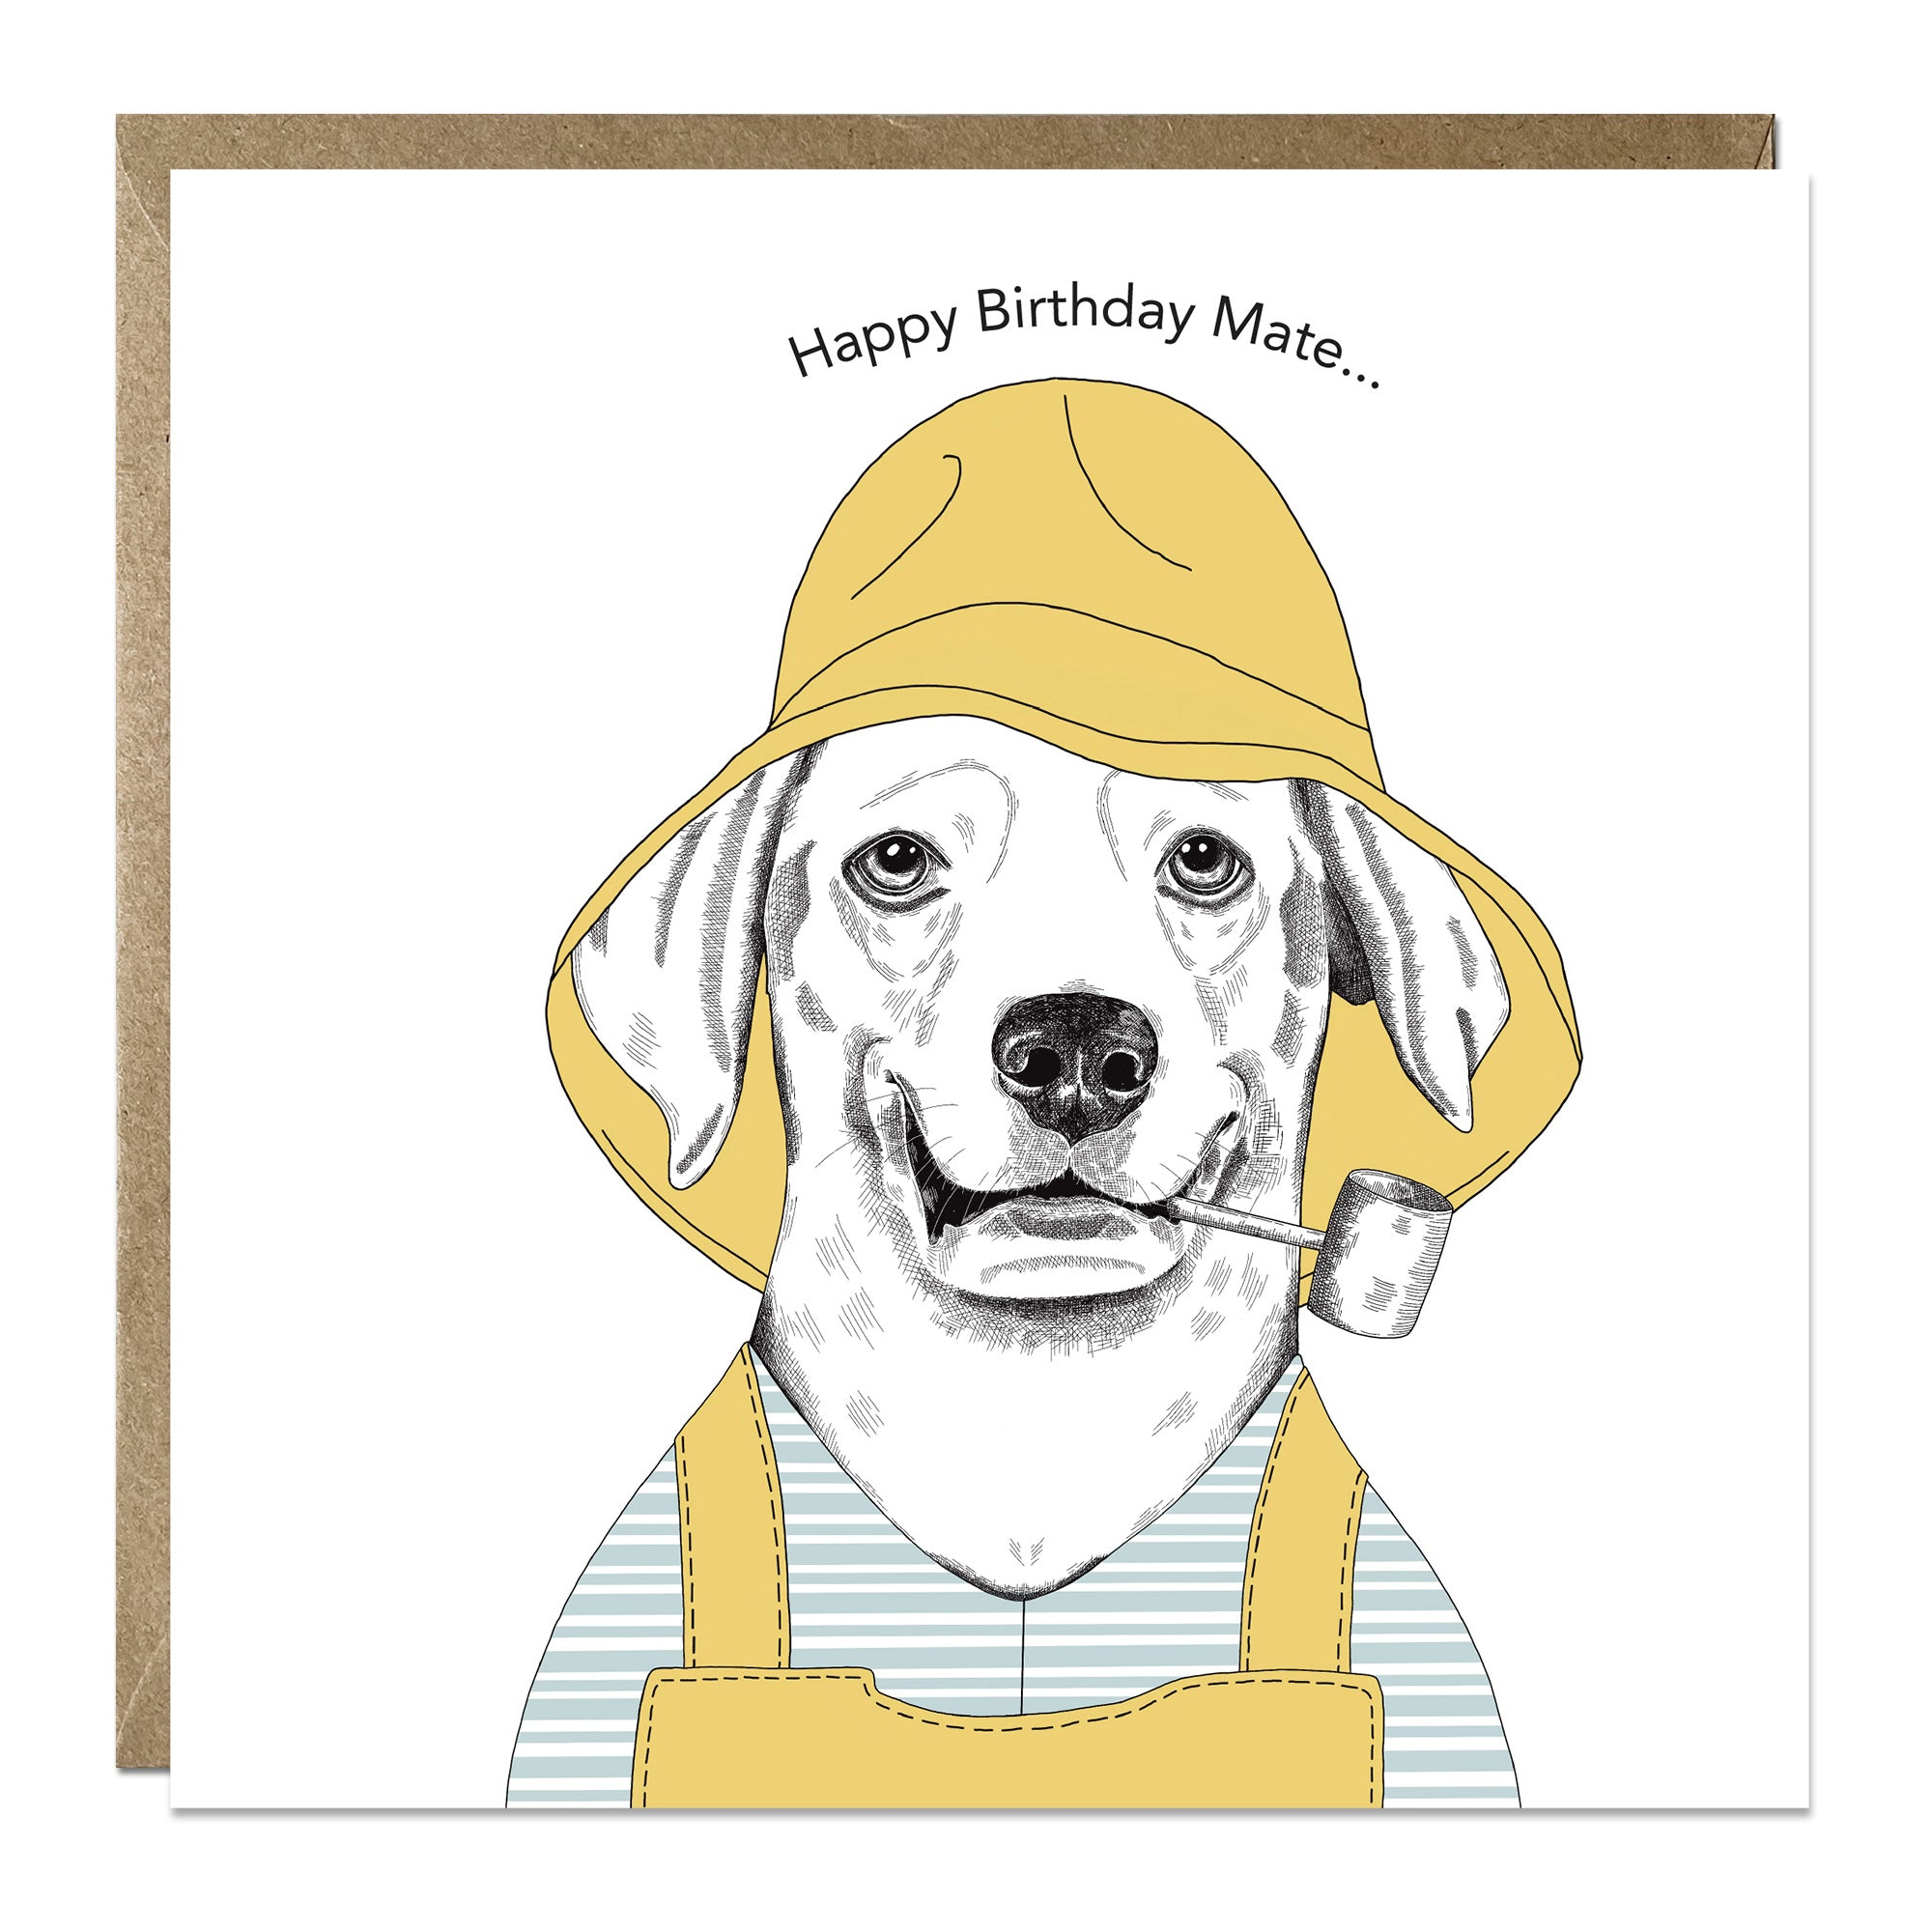 'Happy Birthday Mate' birthday card with Labrador